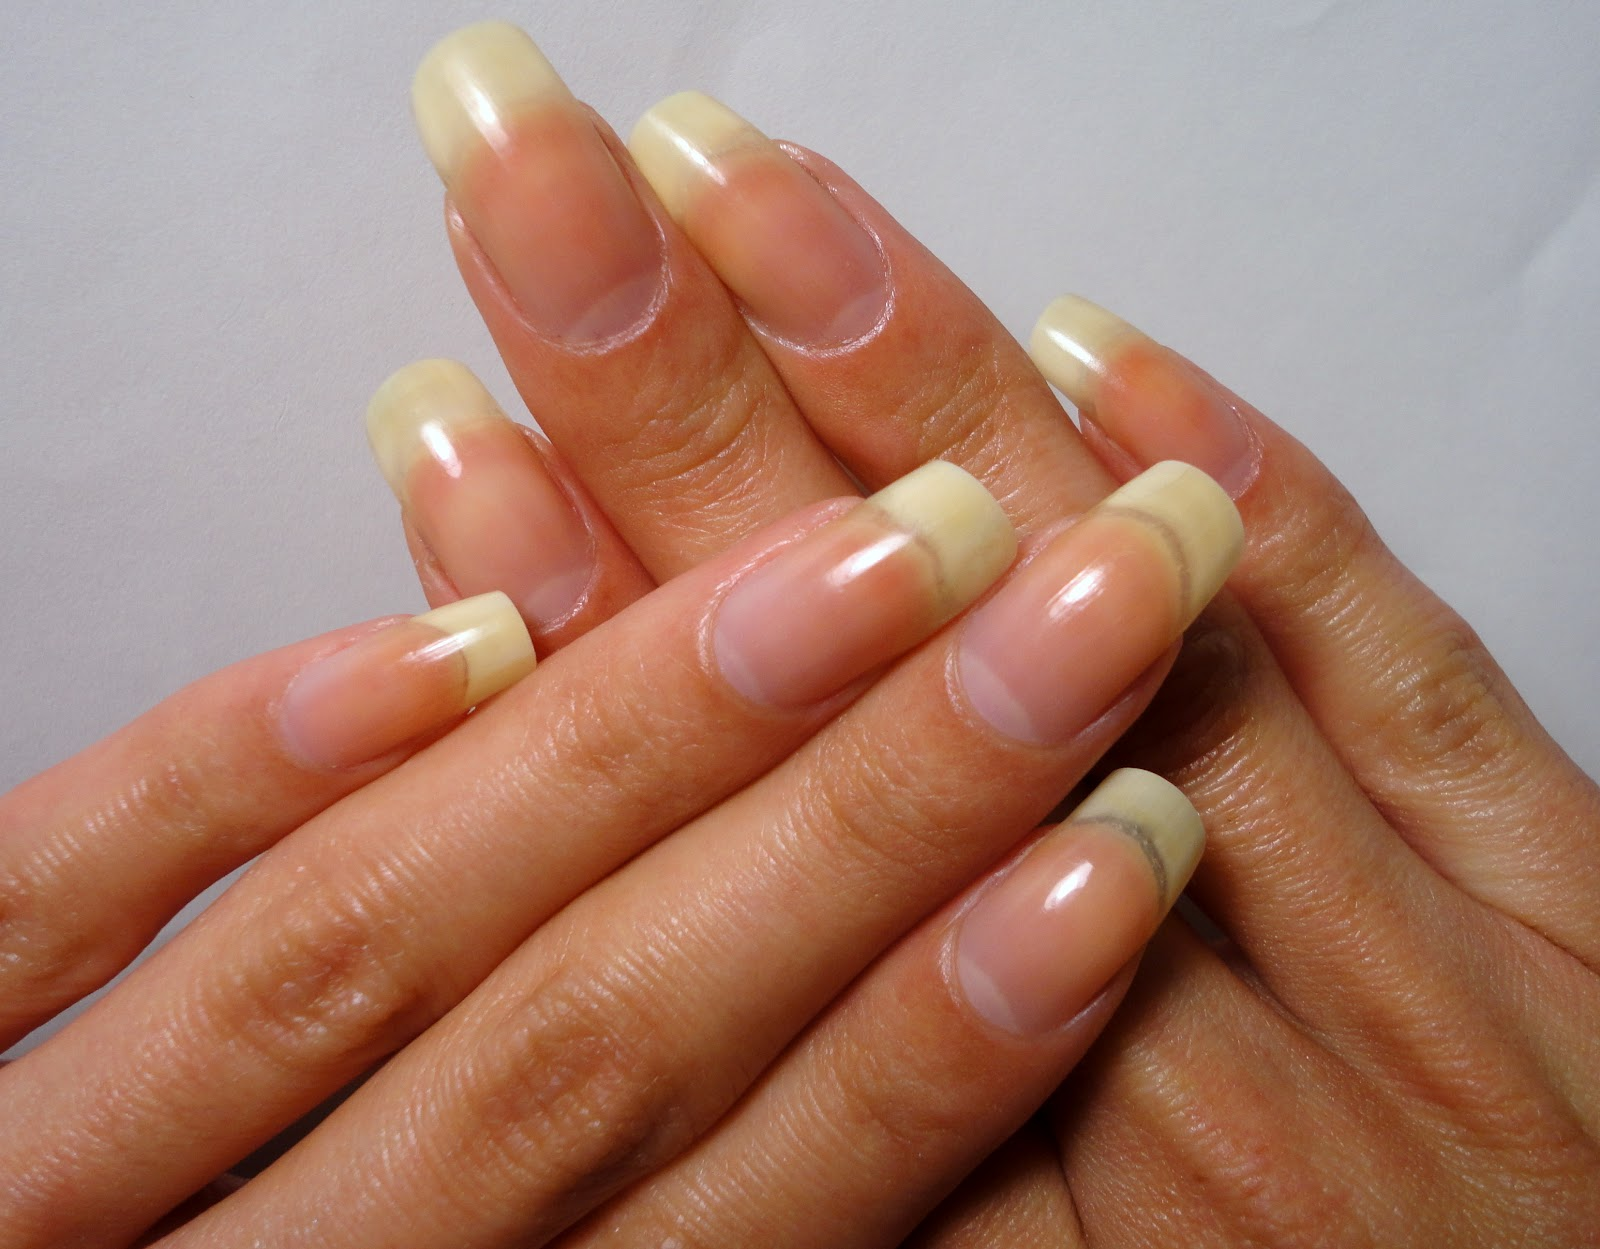 Nails by Ms. Lizard: Naked nails update